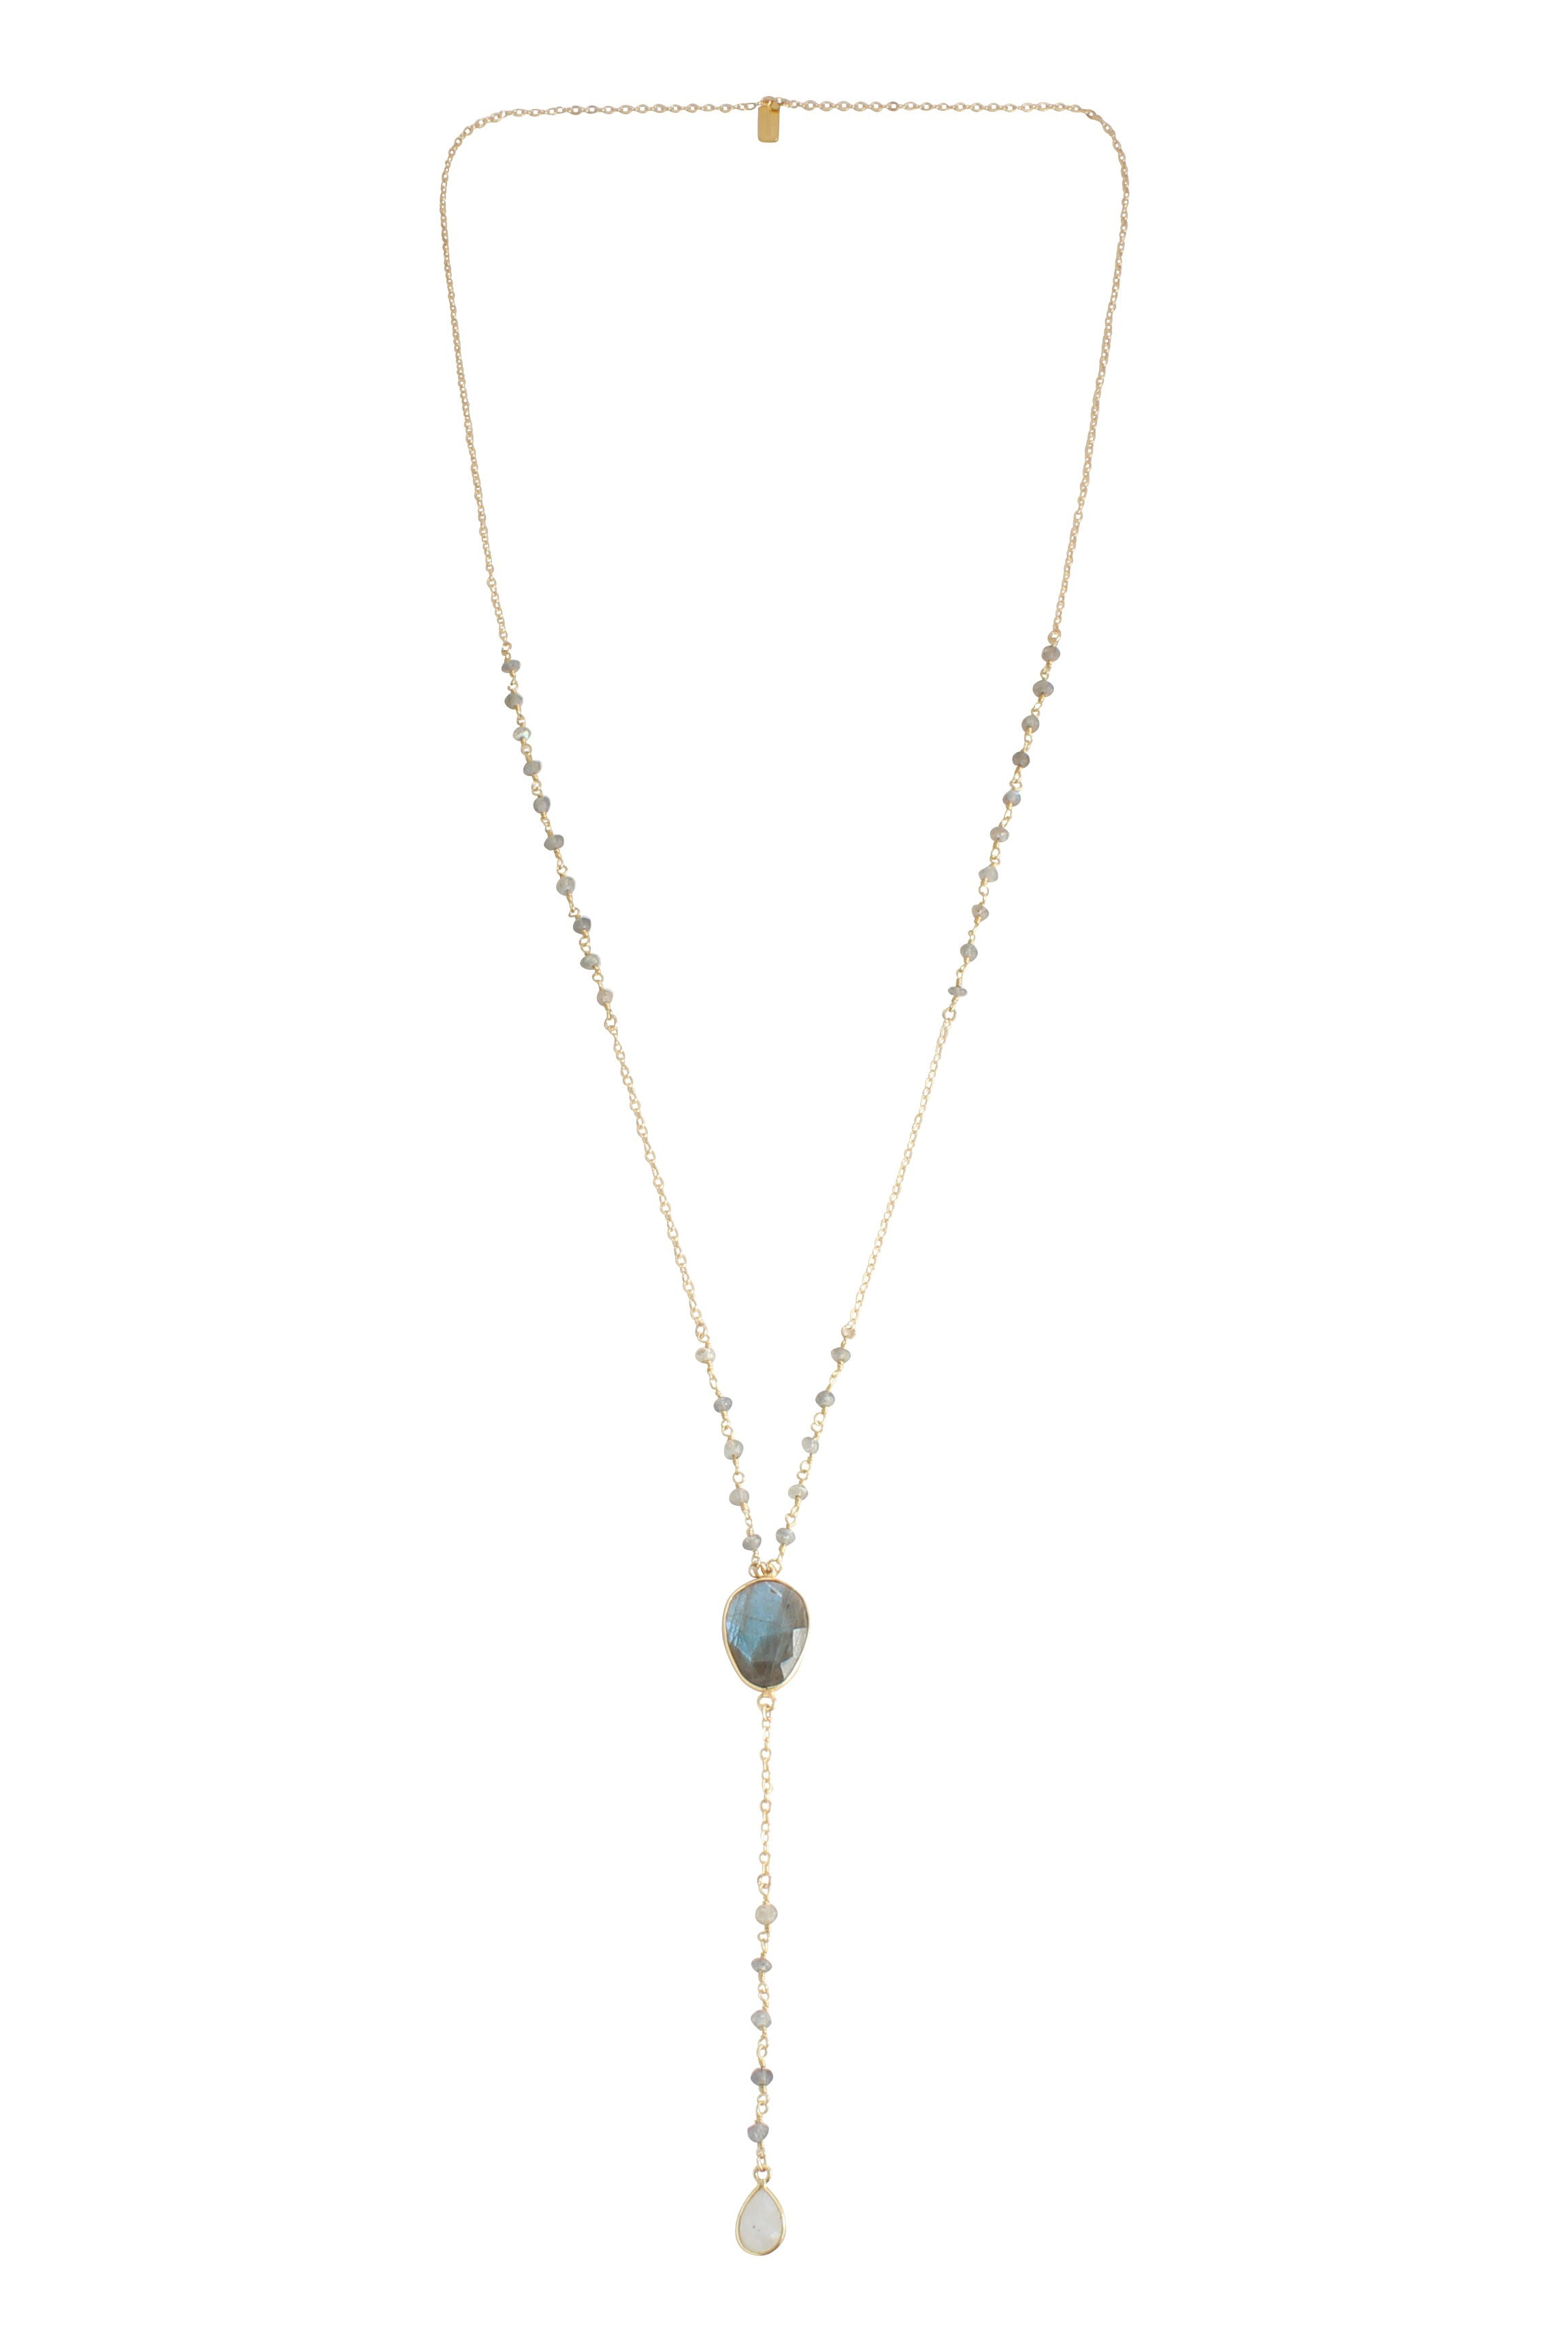 Juliette Necklace - Labradorite & Moonstone